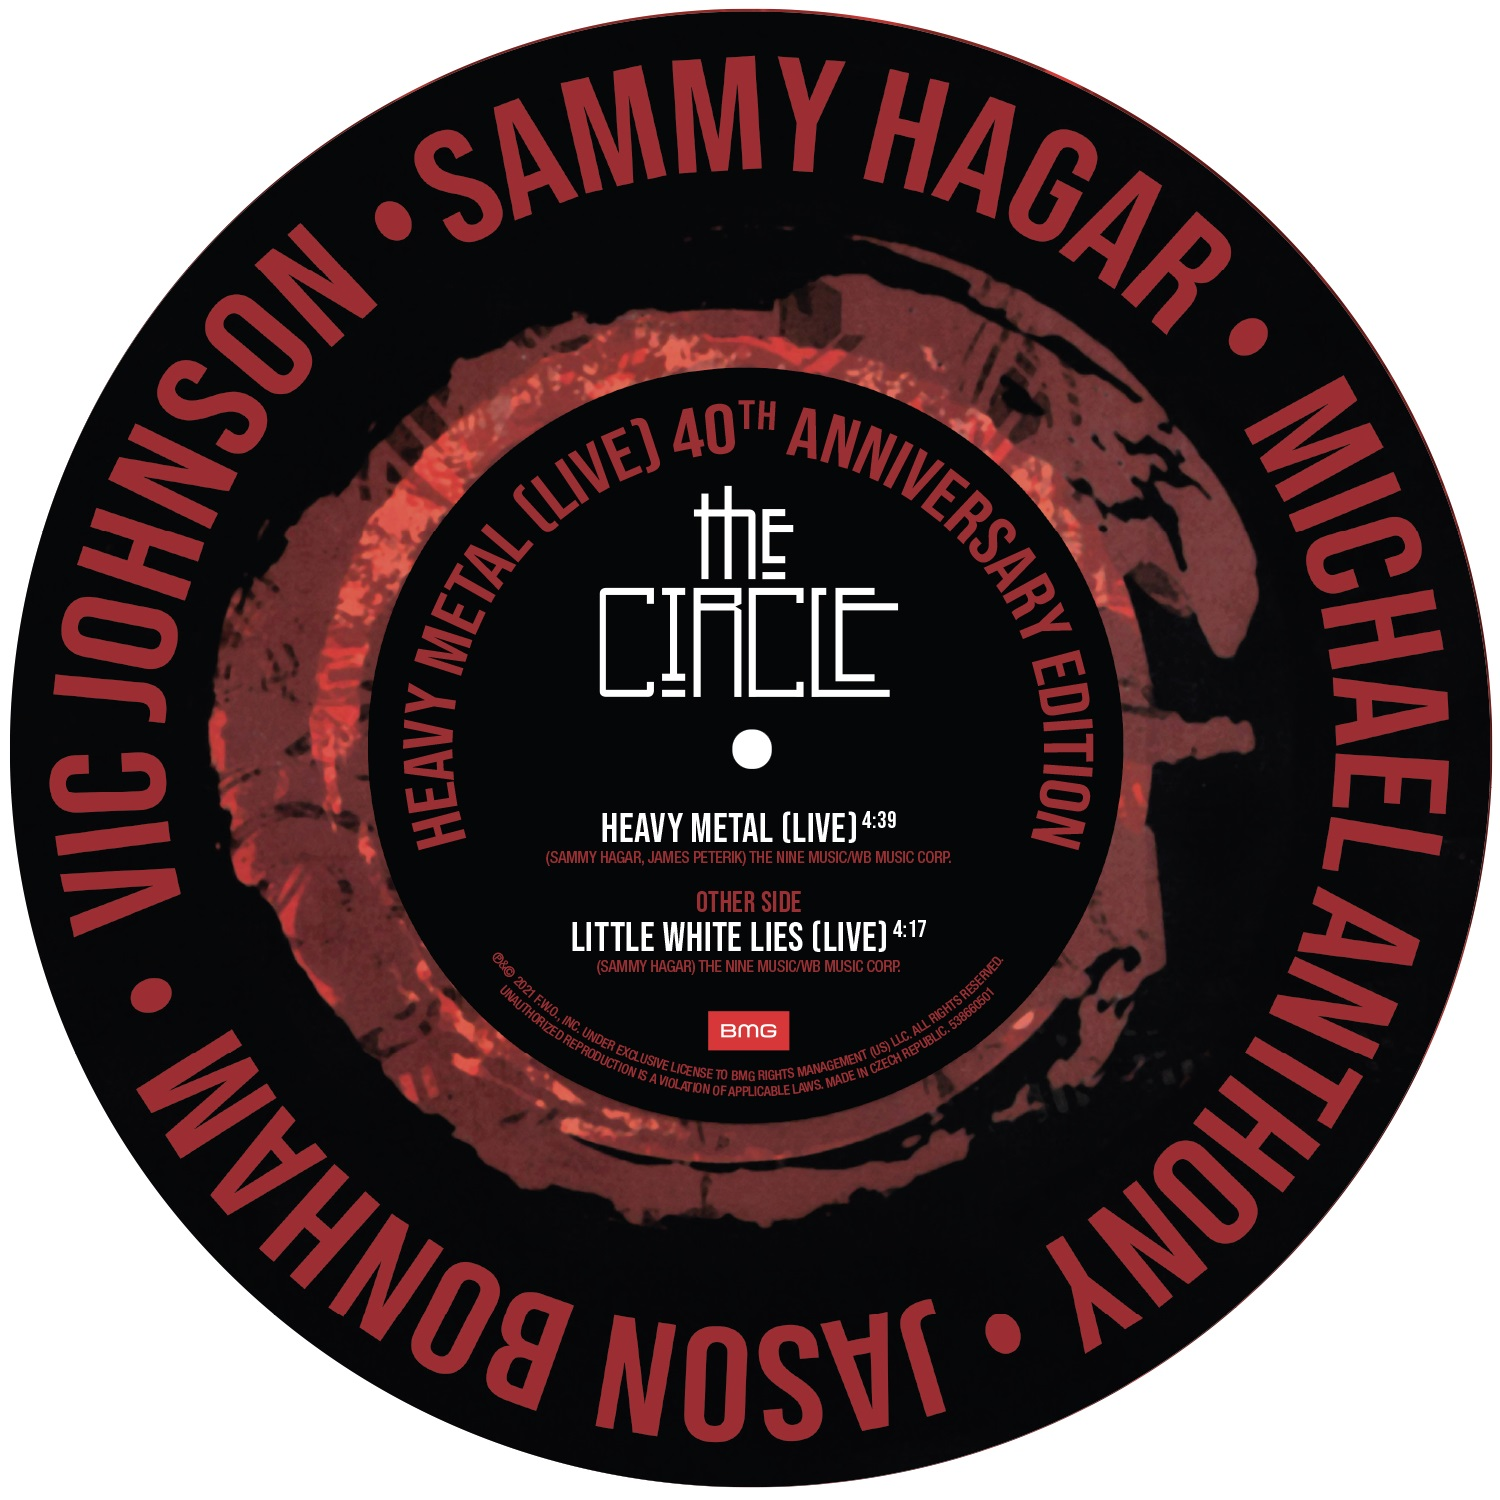 Sammy Hagar & The Circle - Heavy Metal (Live)  [RSD Drops 2021]